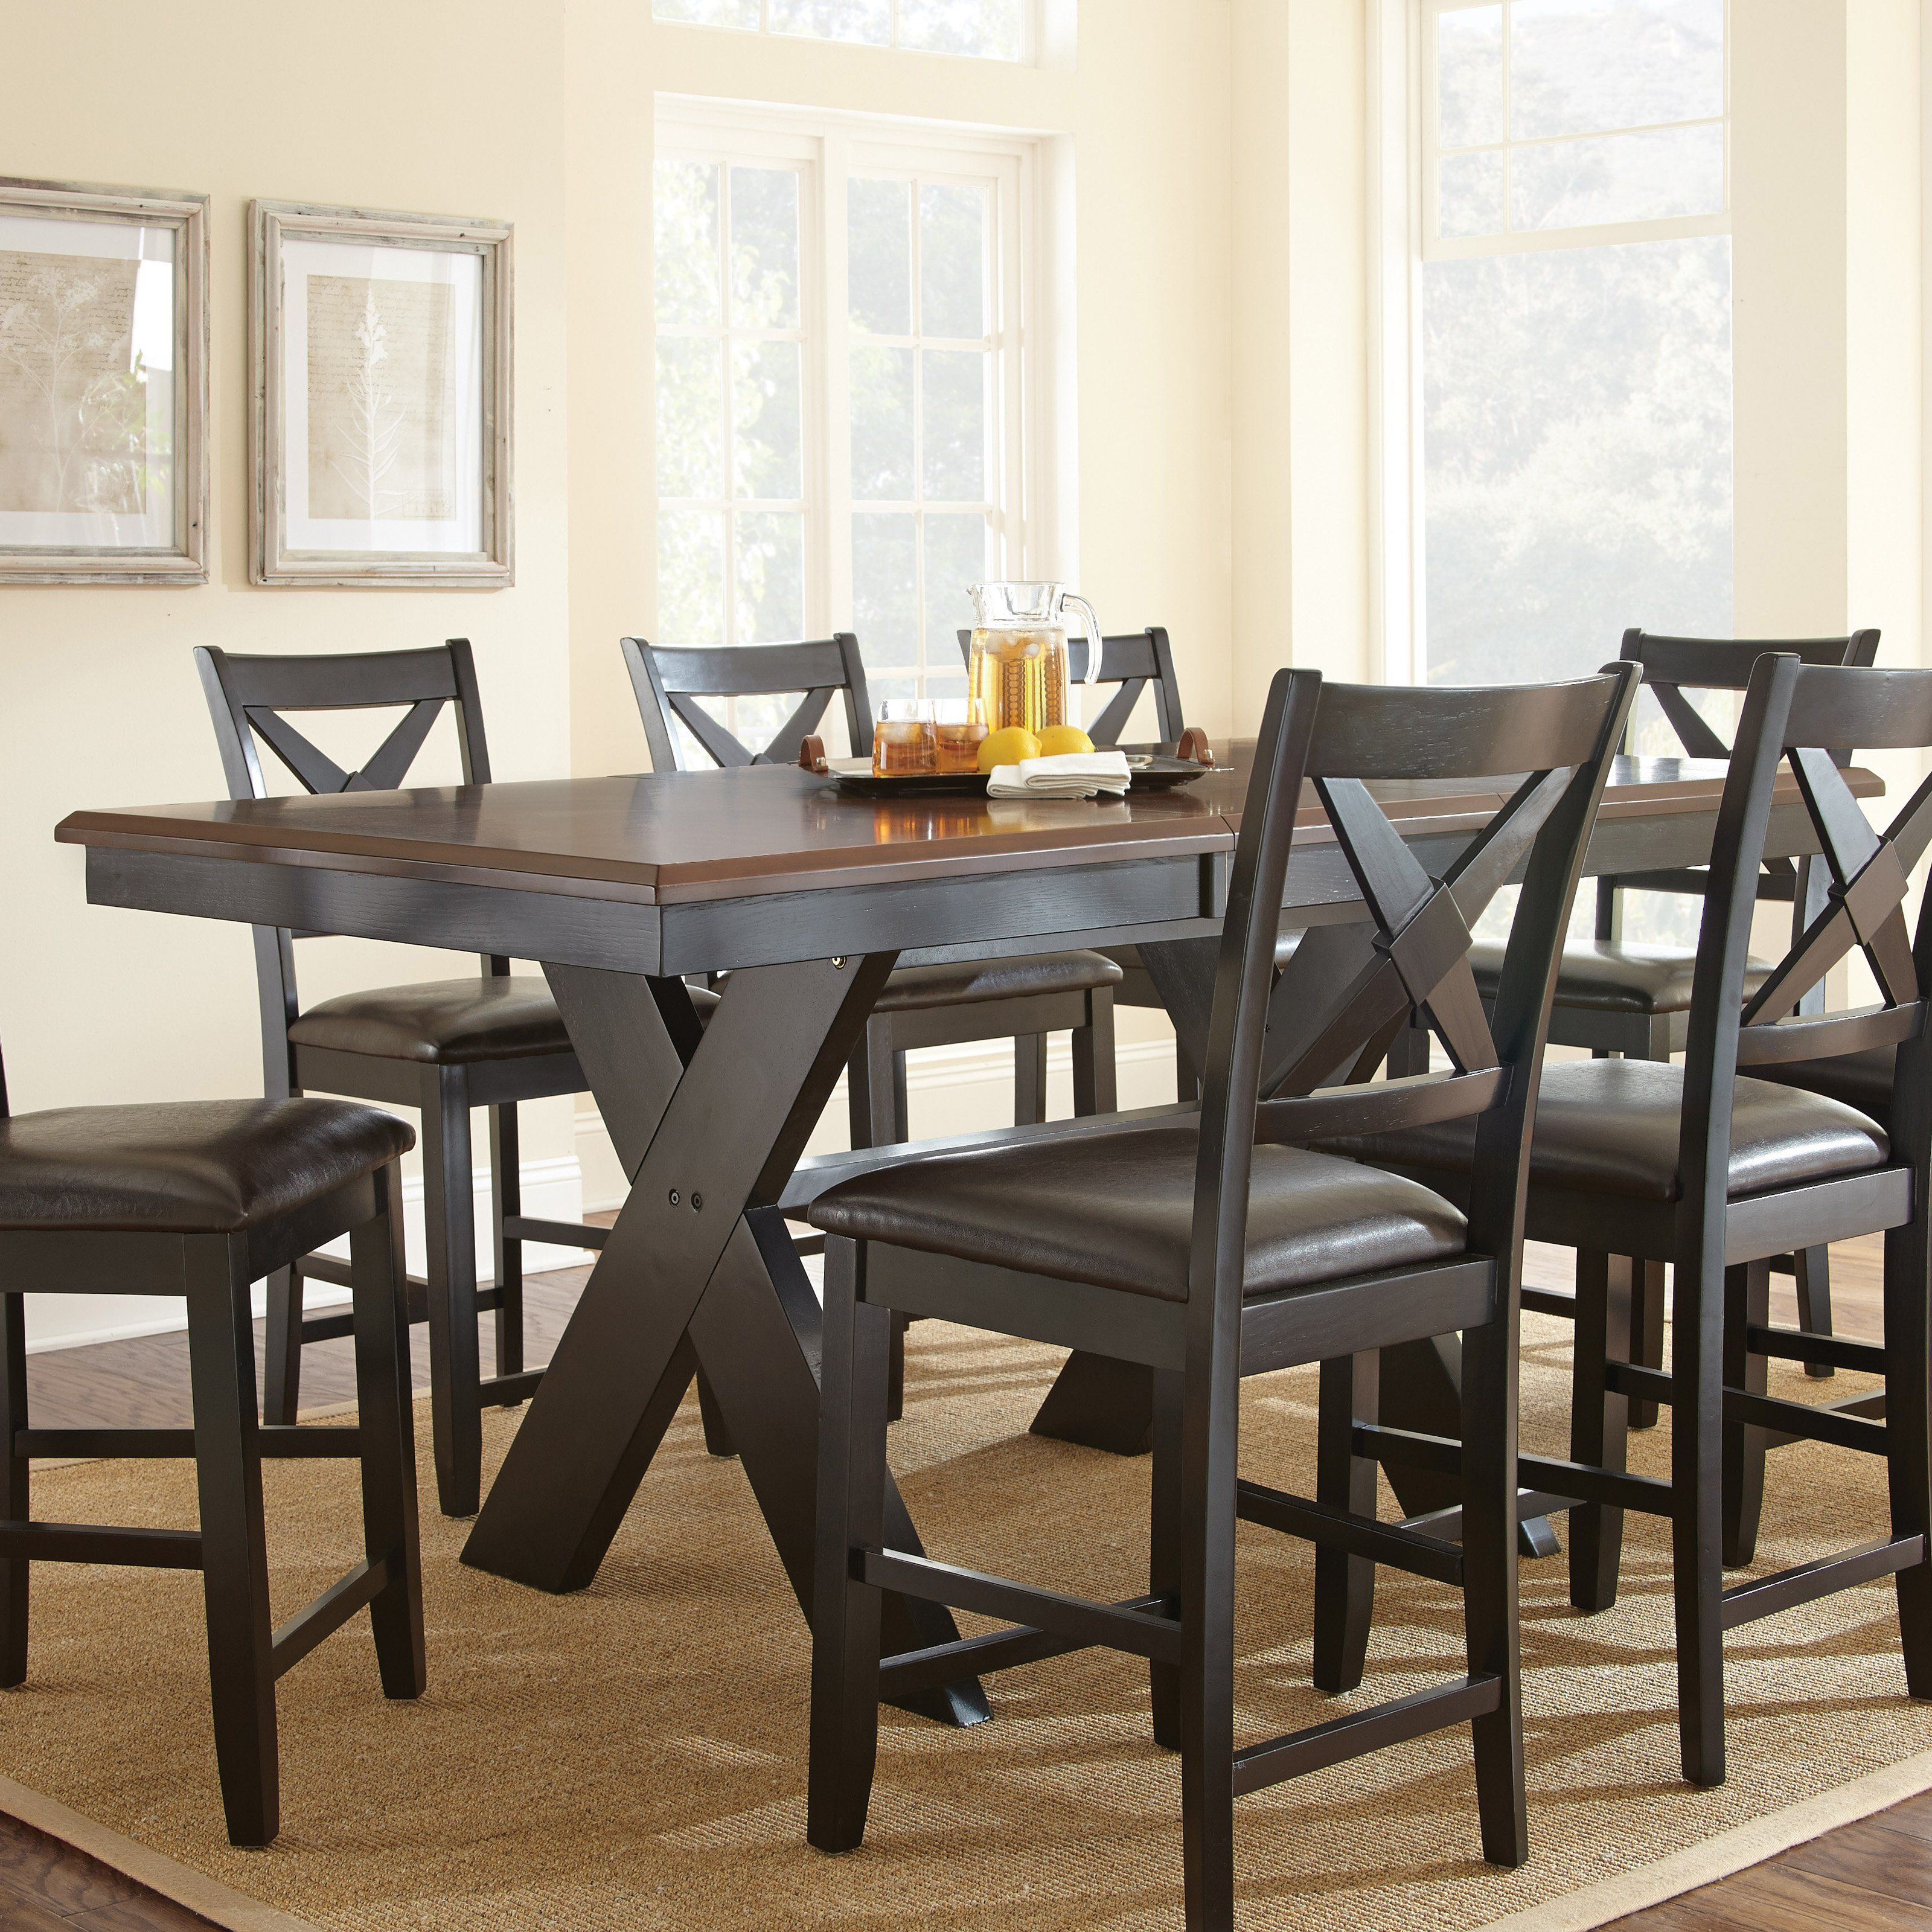 Steve Silver Violante Counter Height Dining Table From Hayneedle